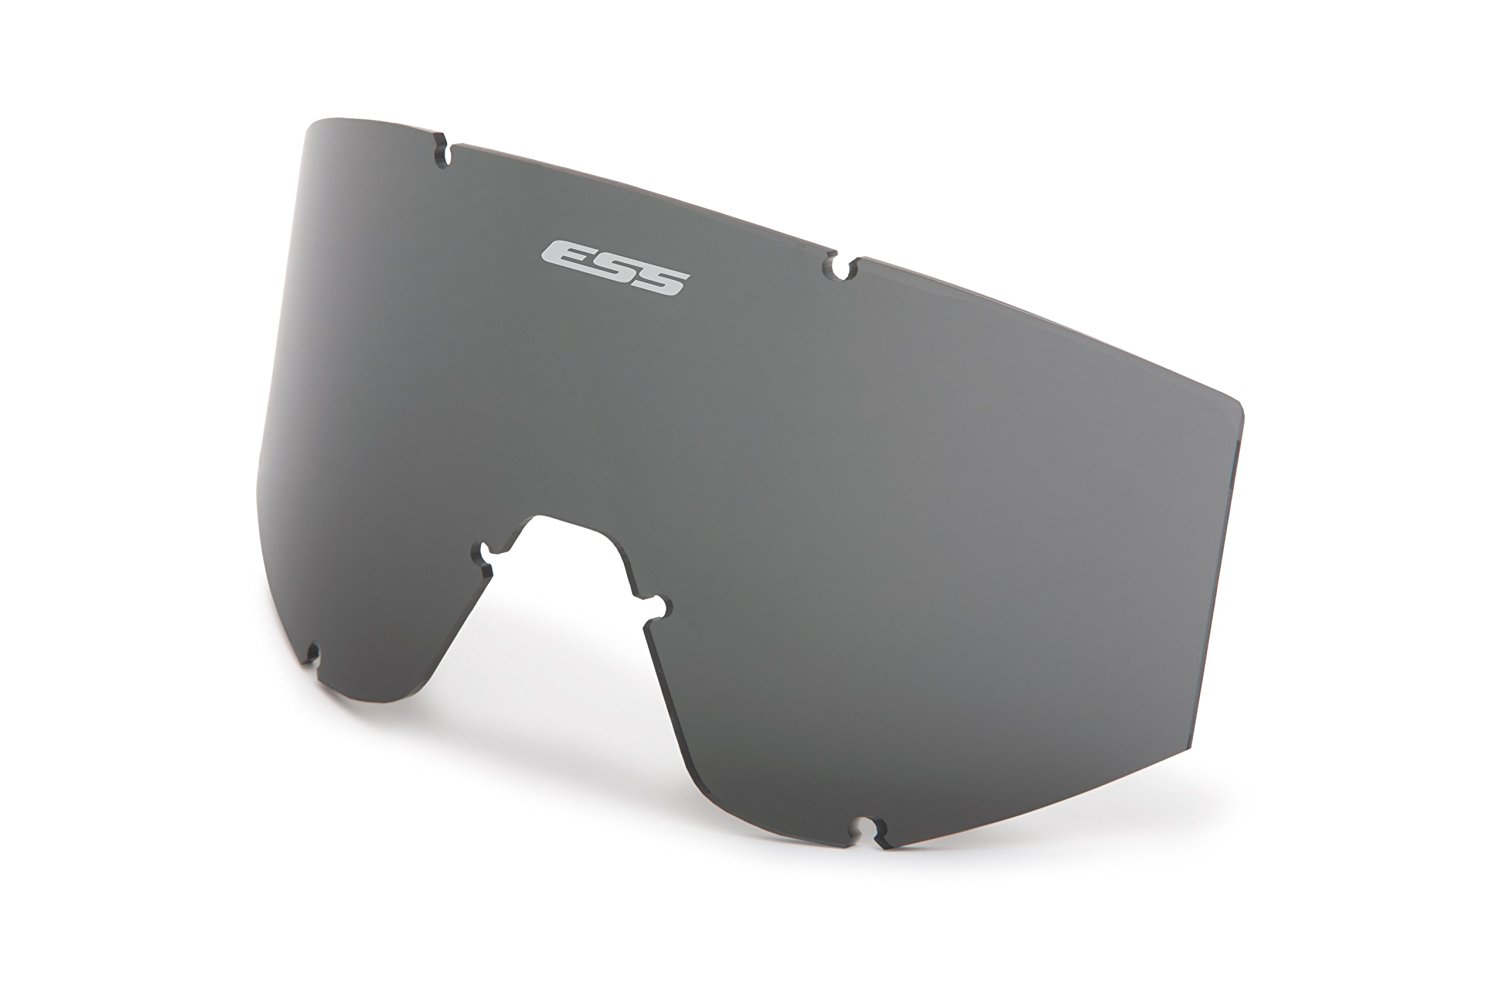 d38c7ee58ea Get Quotations · ESS Striker Series Replacement Goggle Lens Smoke Gray  740-0227